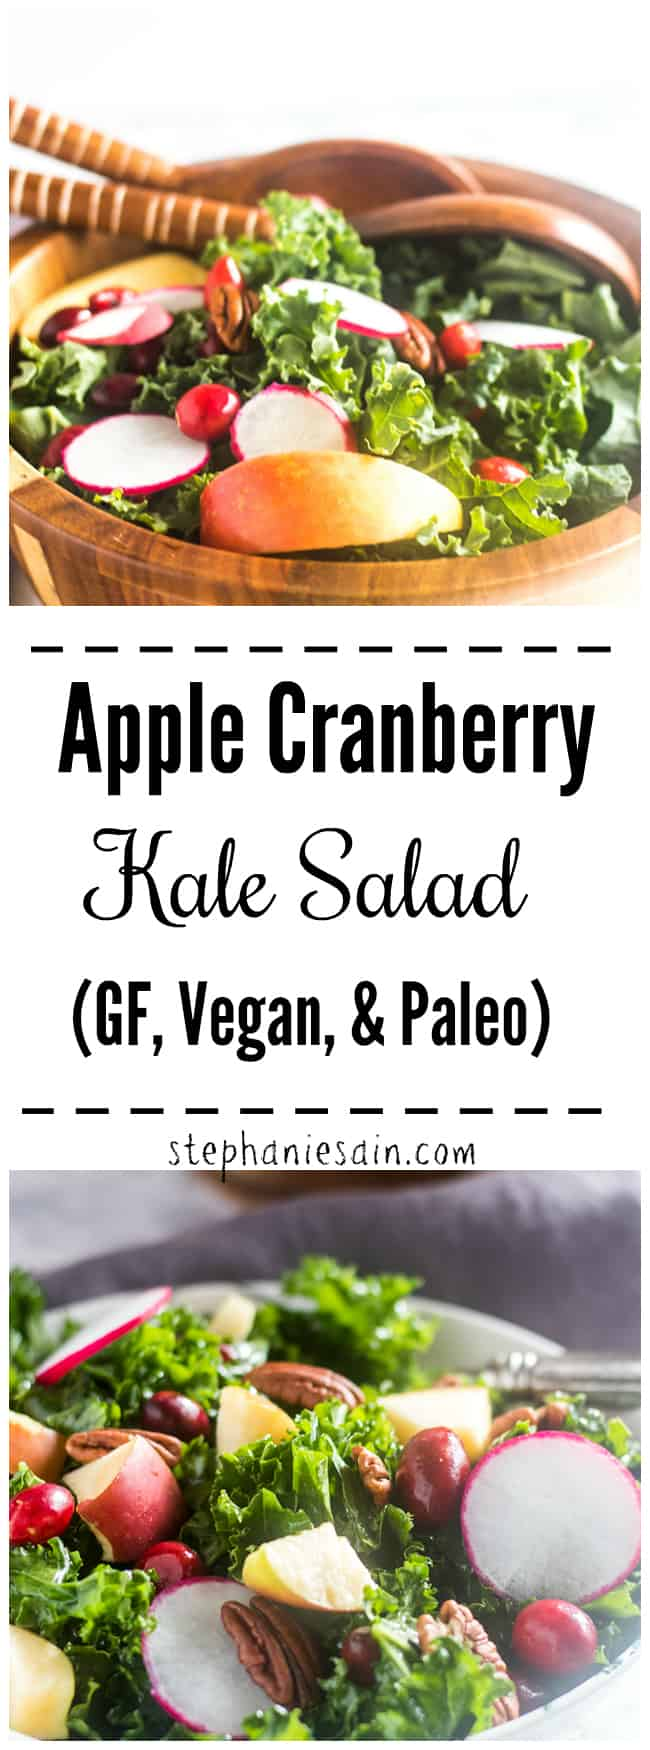 This Kale Salad is a super easy salad made with massaged kale, apples, cranberries & pecans. Lightly dressed with a lemon maple dressing. Perfect for a Holiday side or anytime you want a healthy light lunch or dinner. Gluten Free, Vegan, & Paleo.